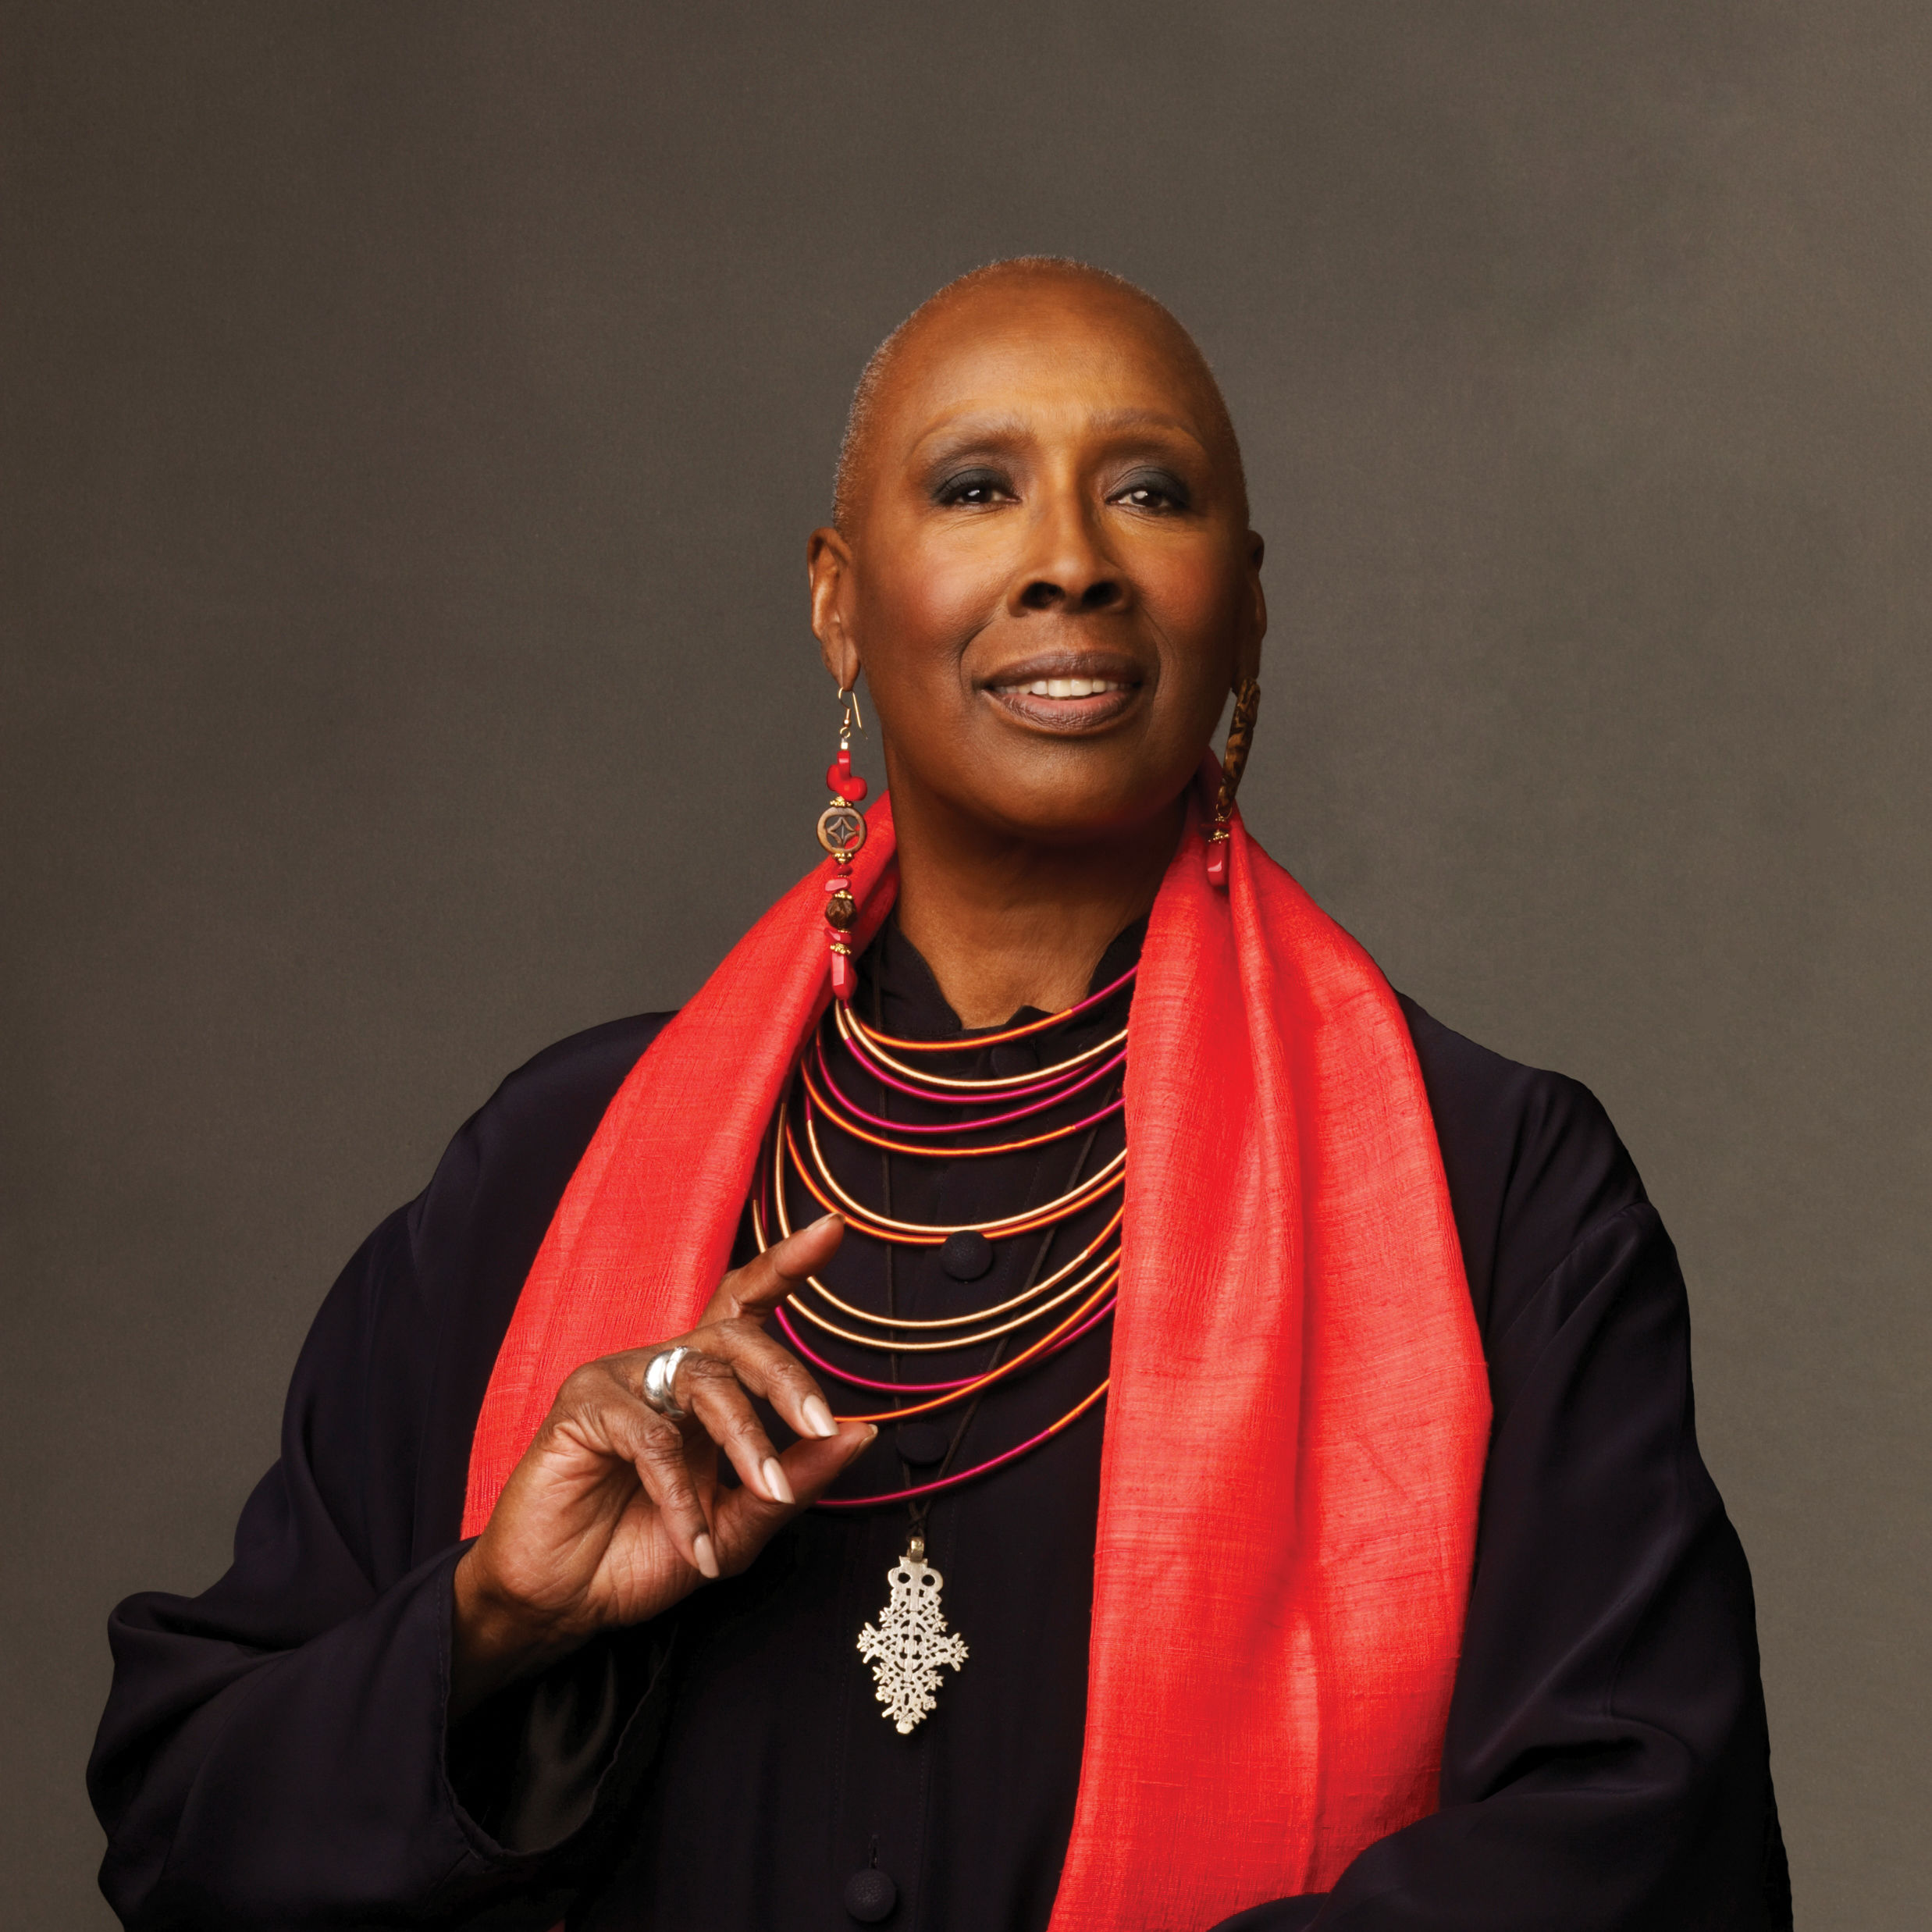 Judith jamison. photo by andrew eccles bgb2mk